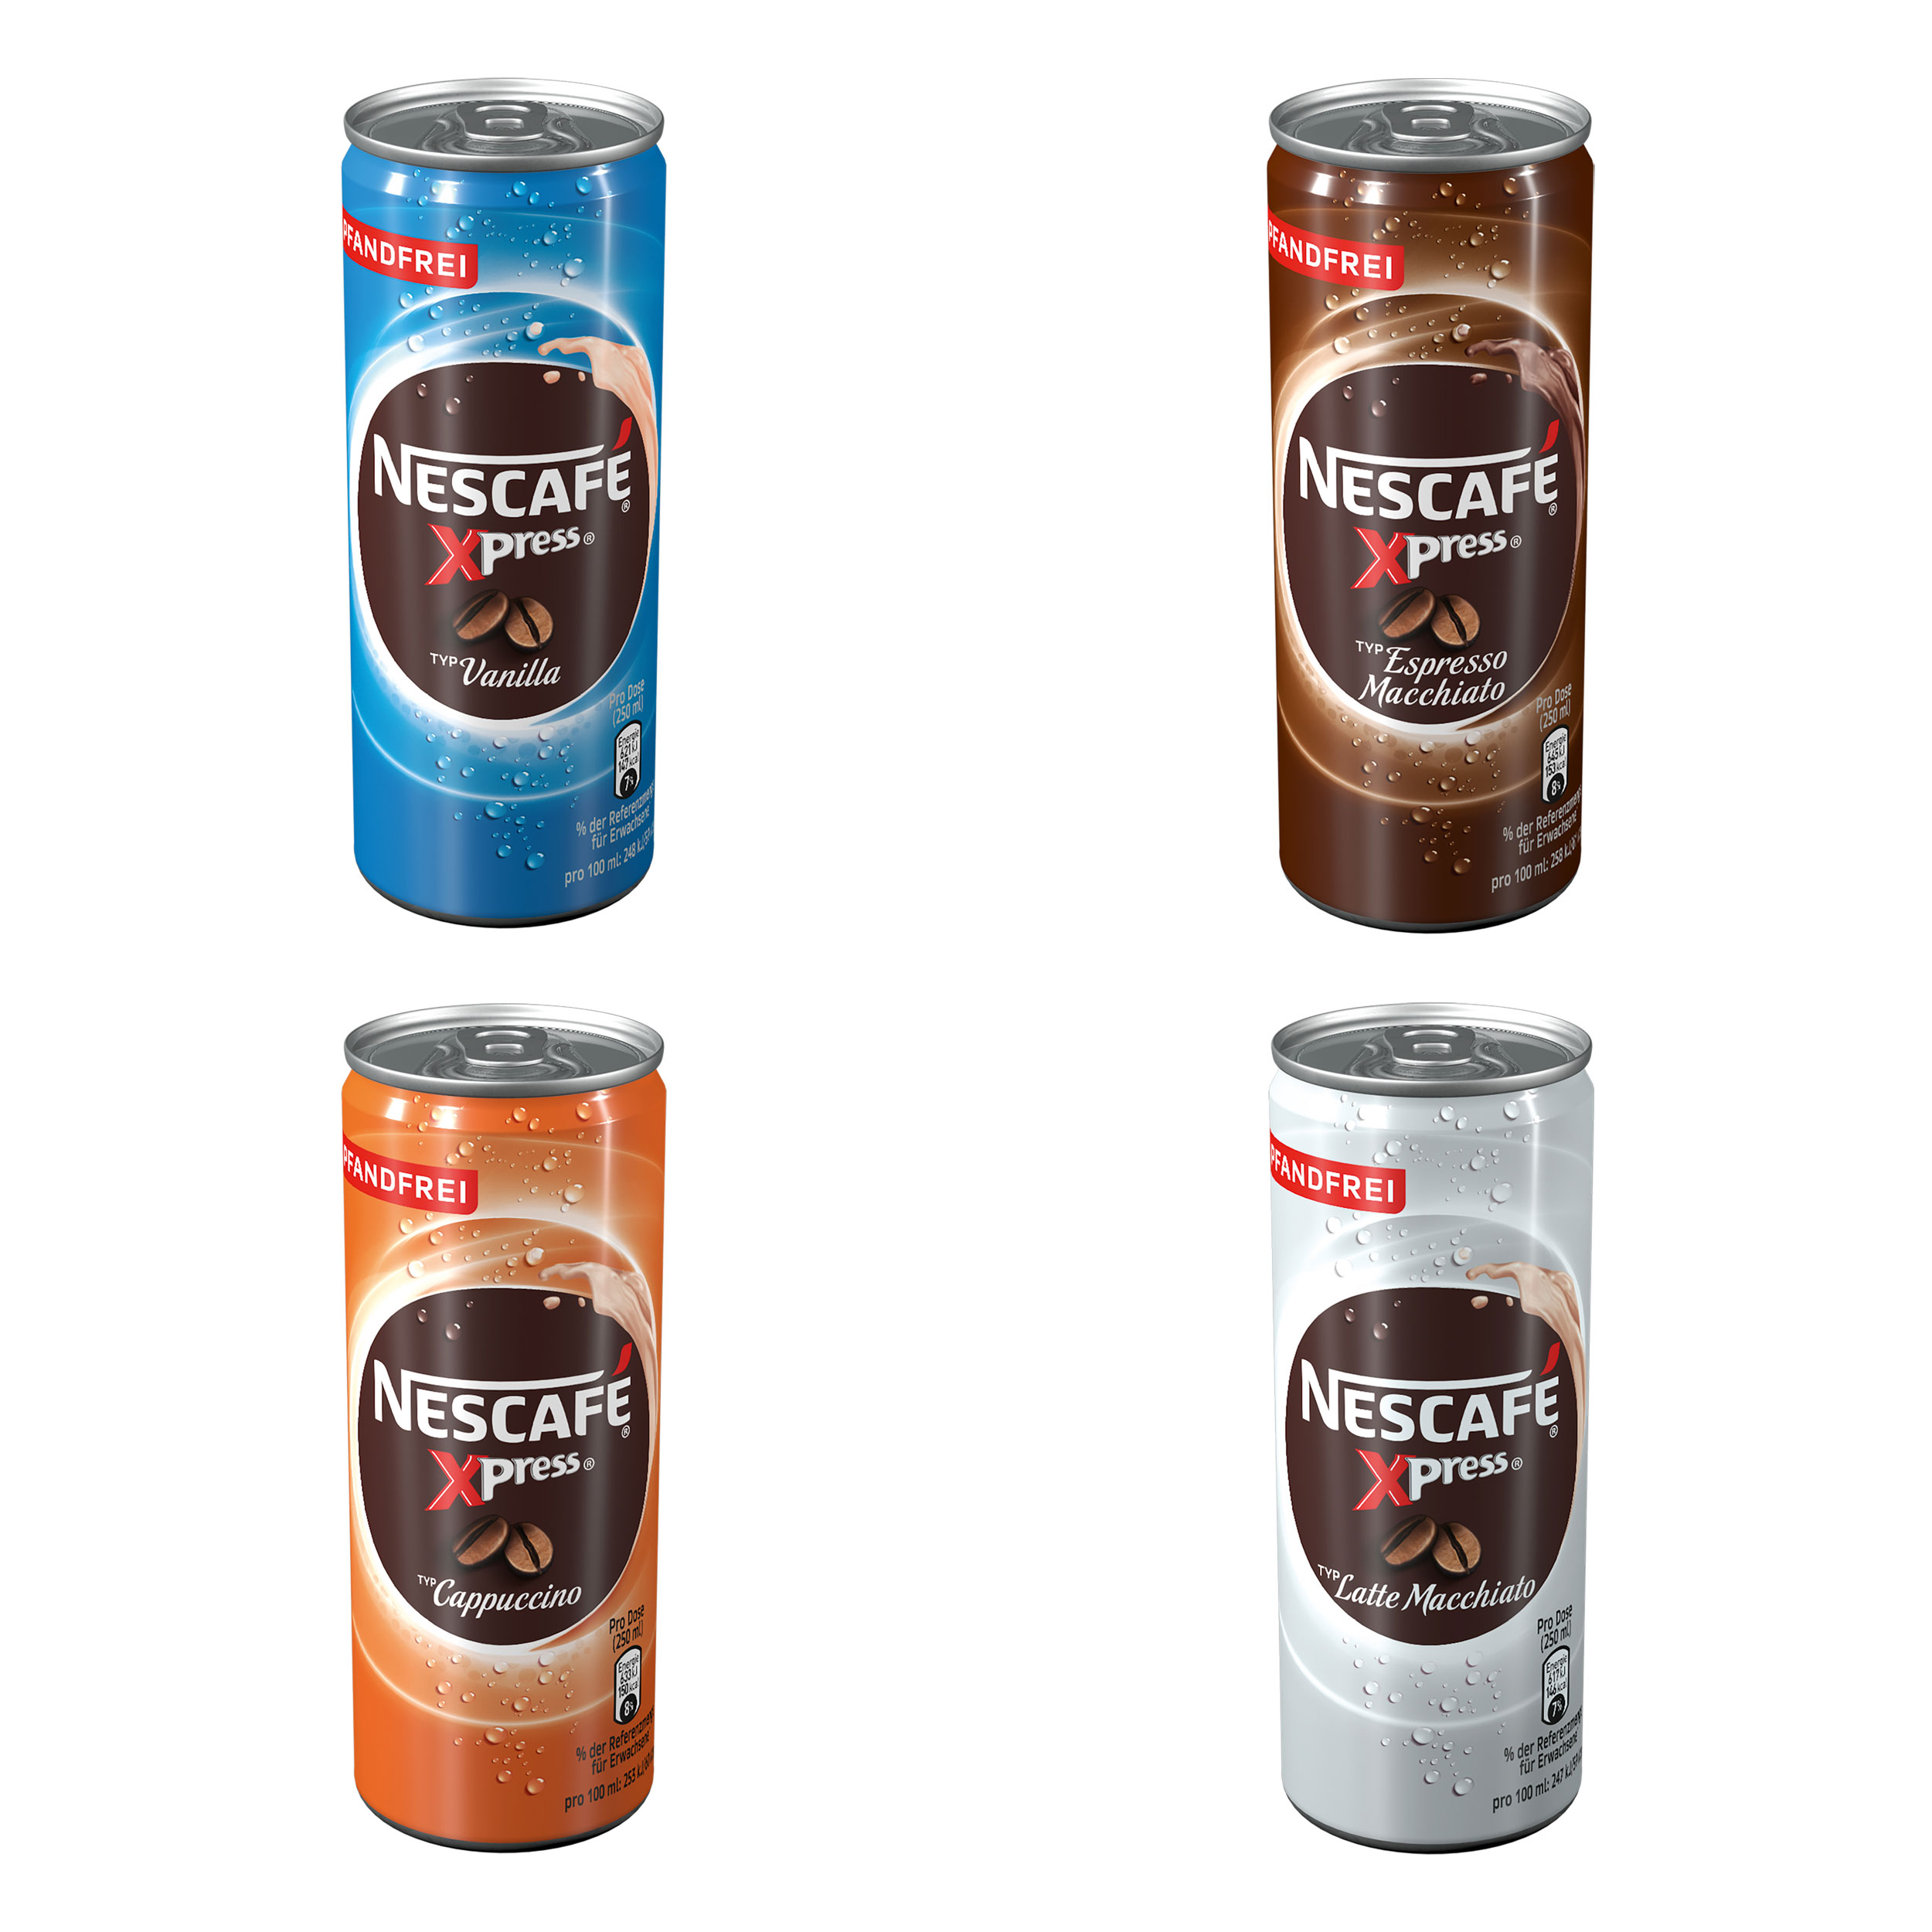 Nescafe Xpress